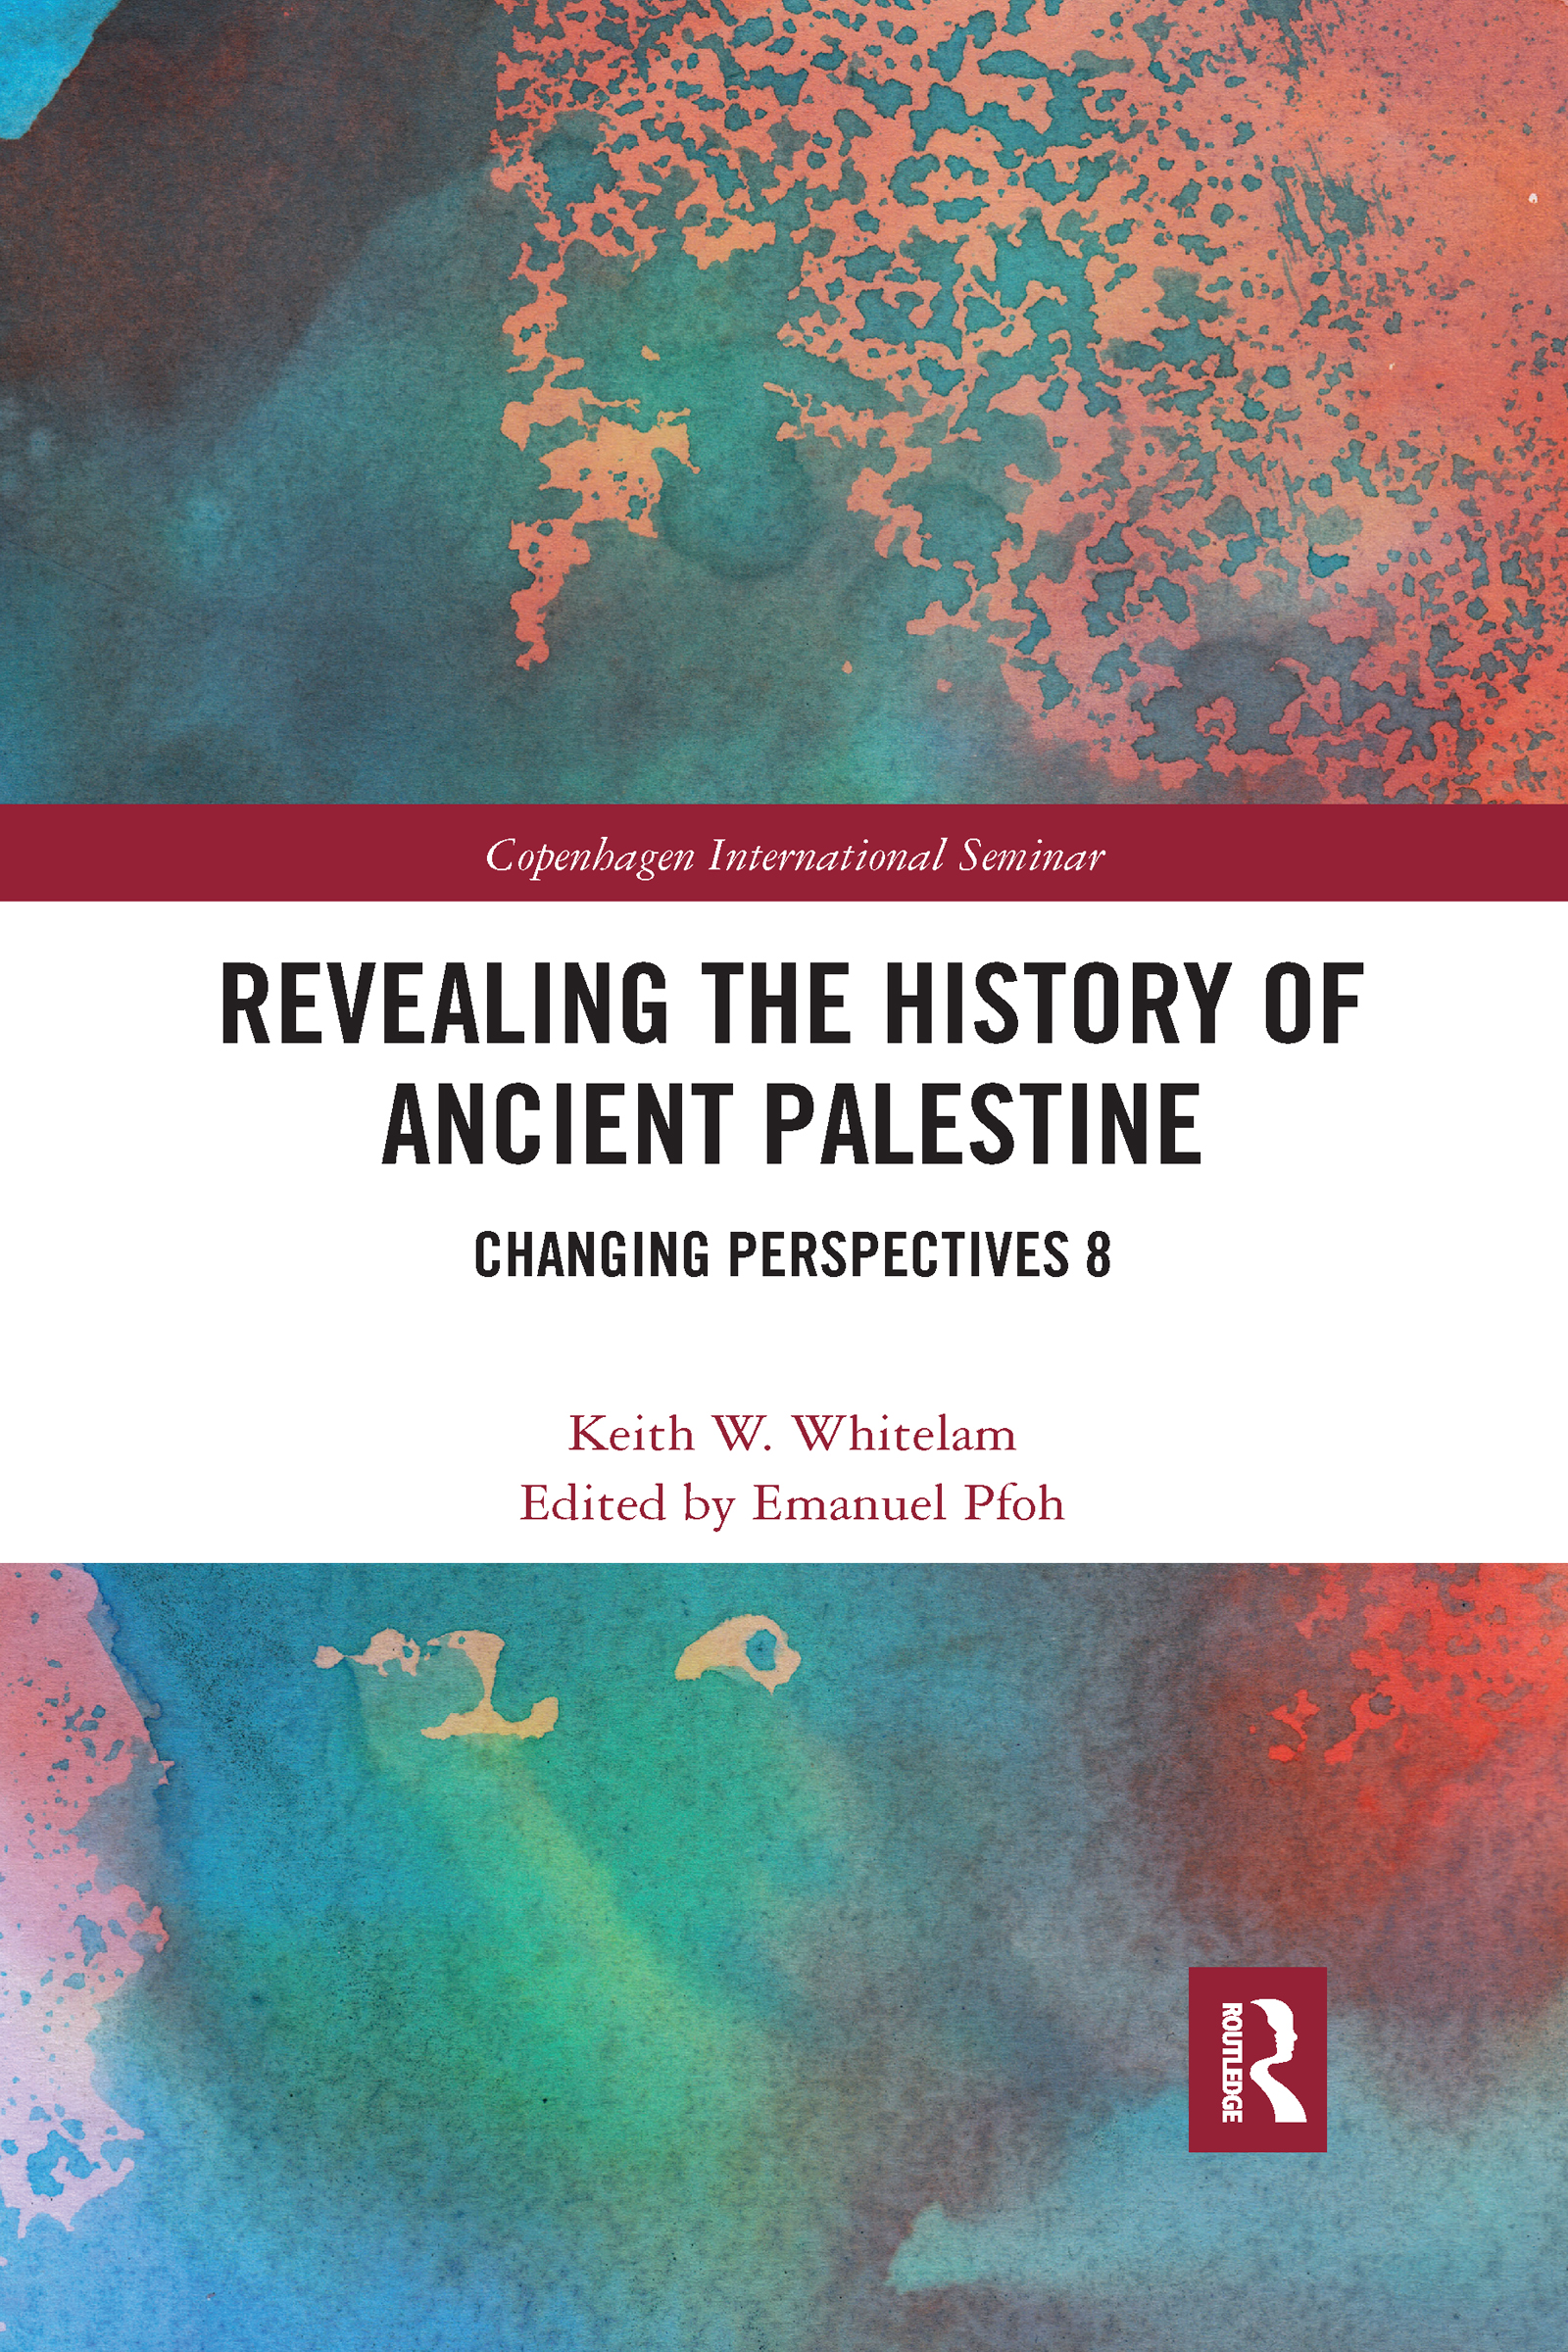 Revealing the History of Ancient Palestine